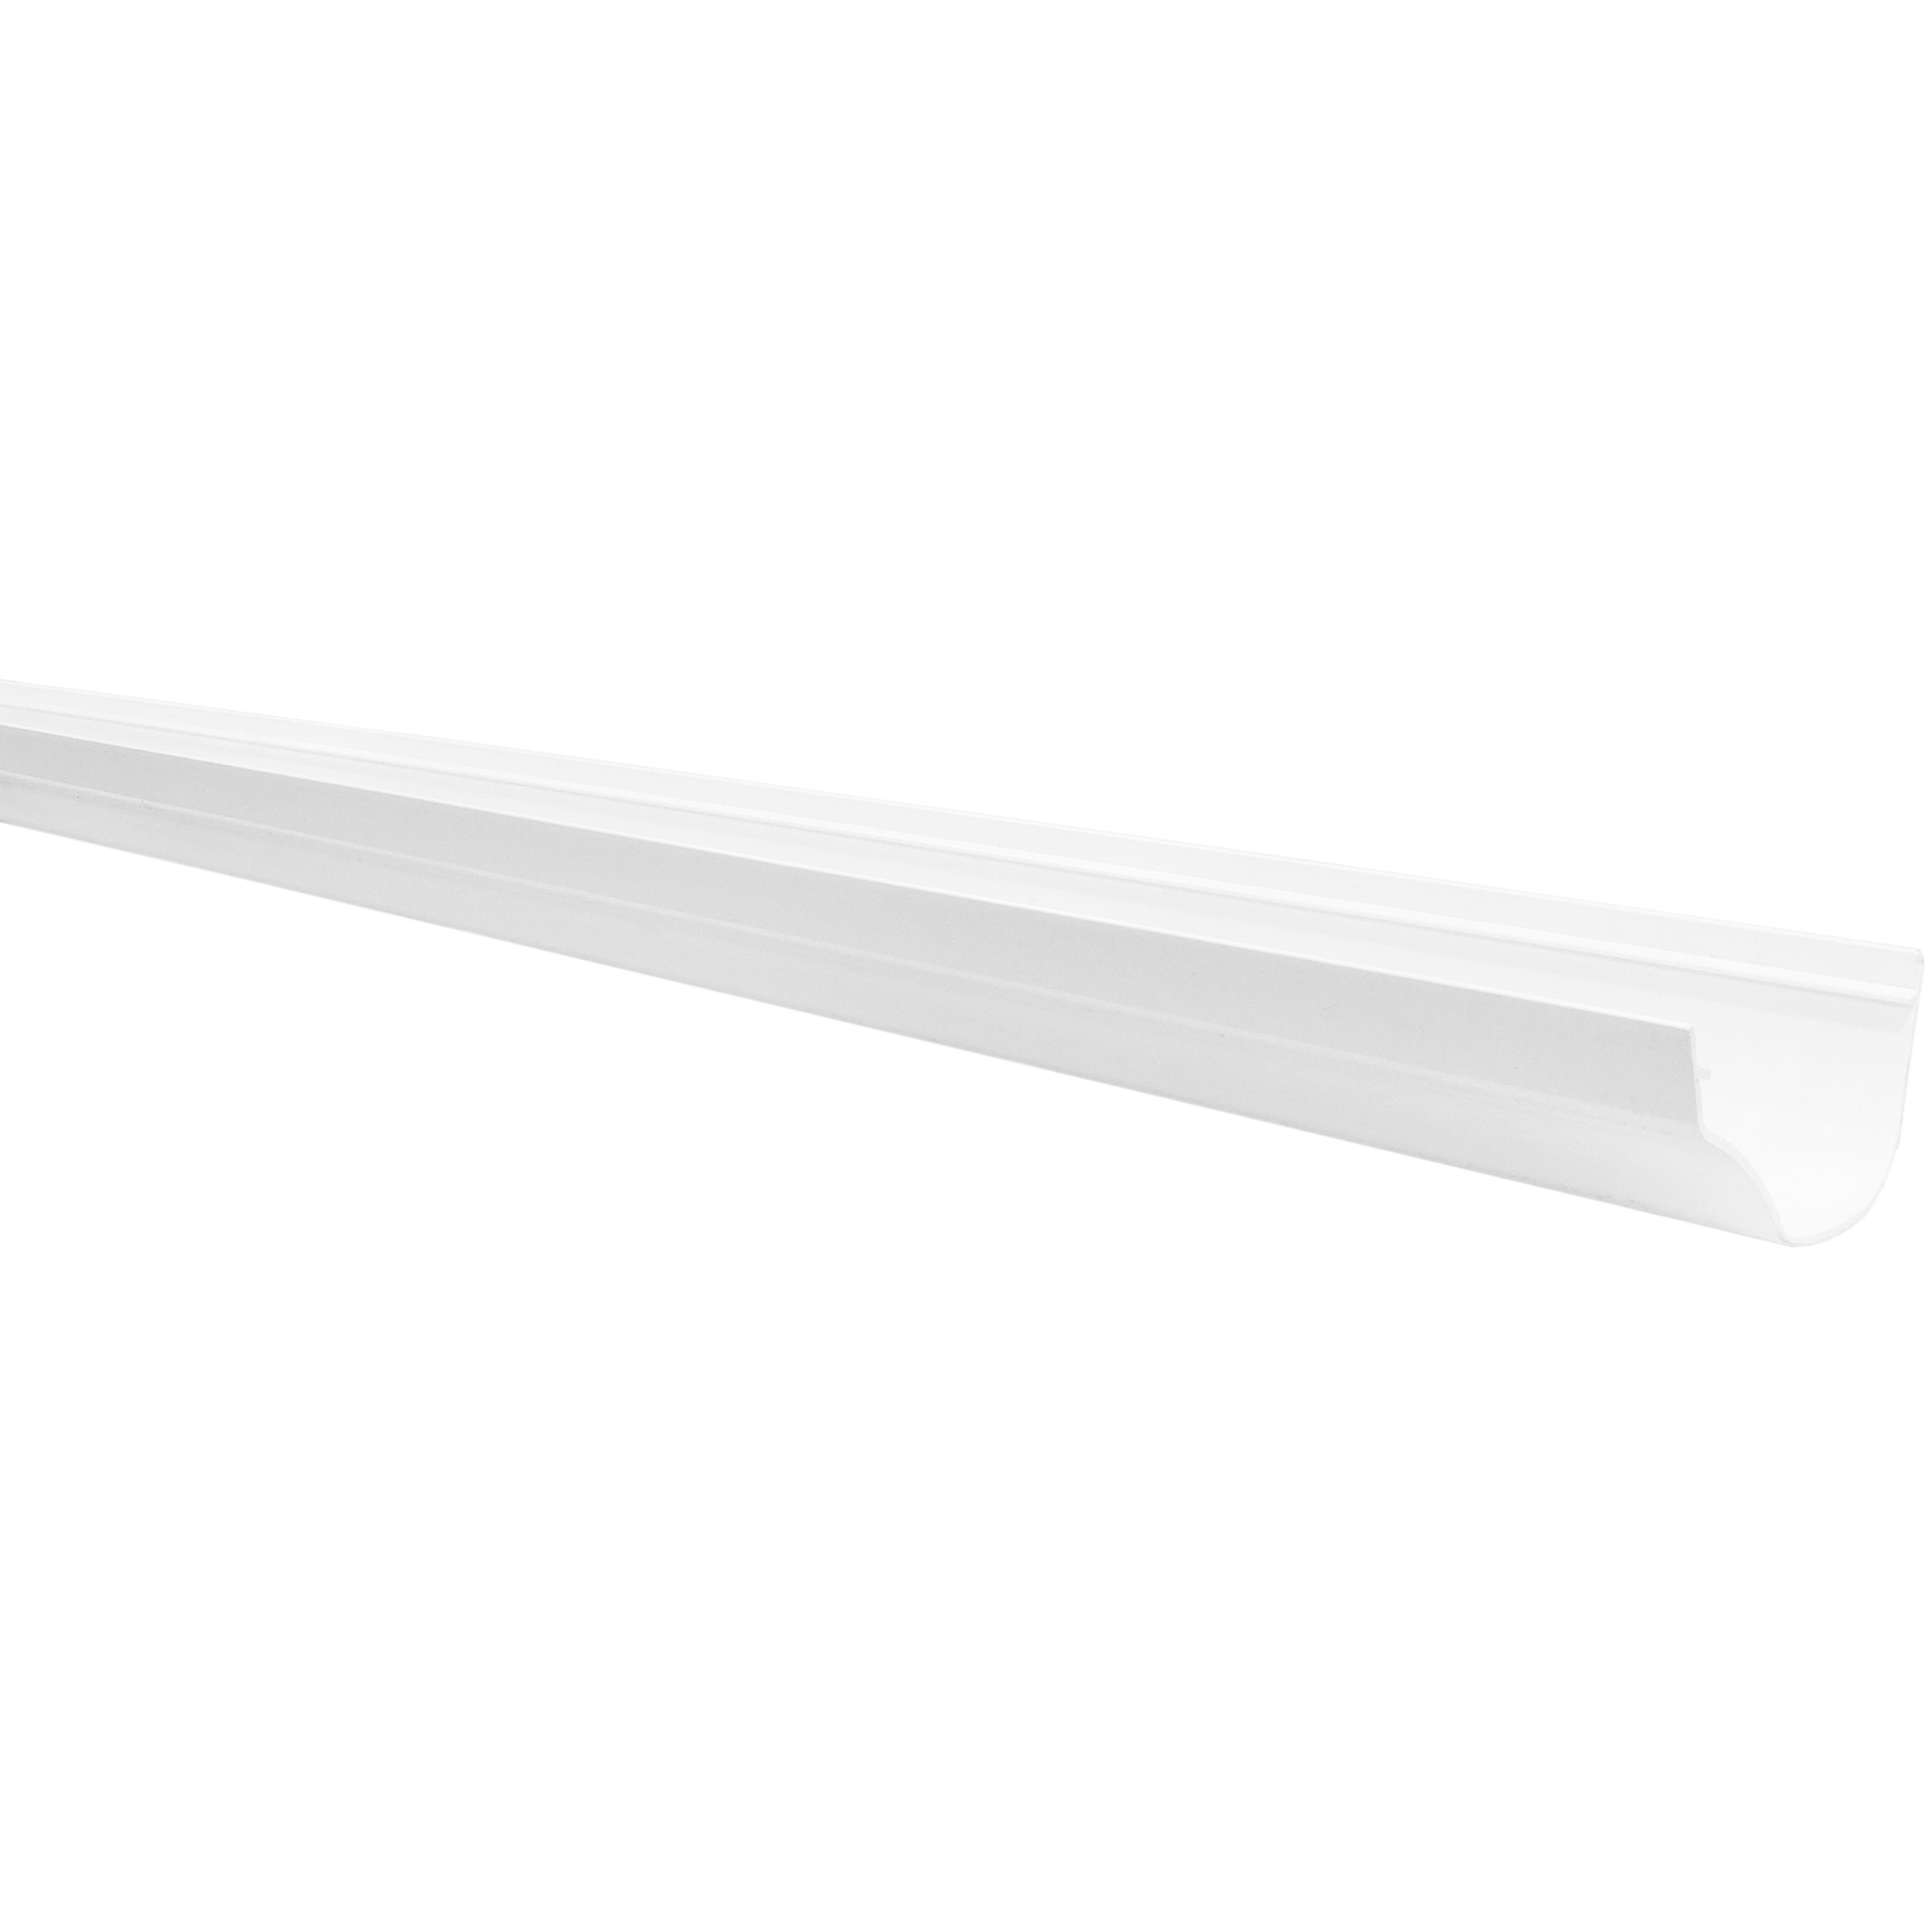 Polypipe 130mm Ogee Extra Capacity Gutter - White, 4 metre